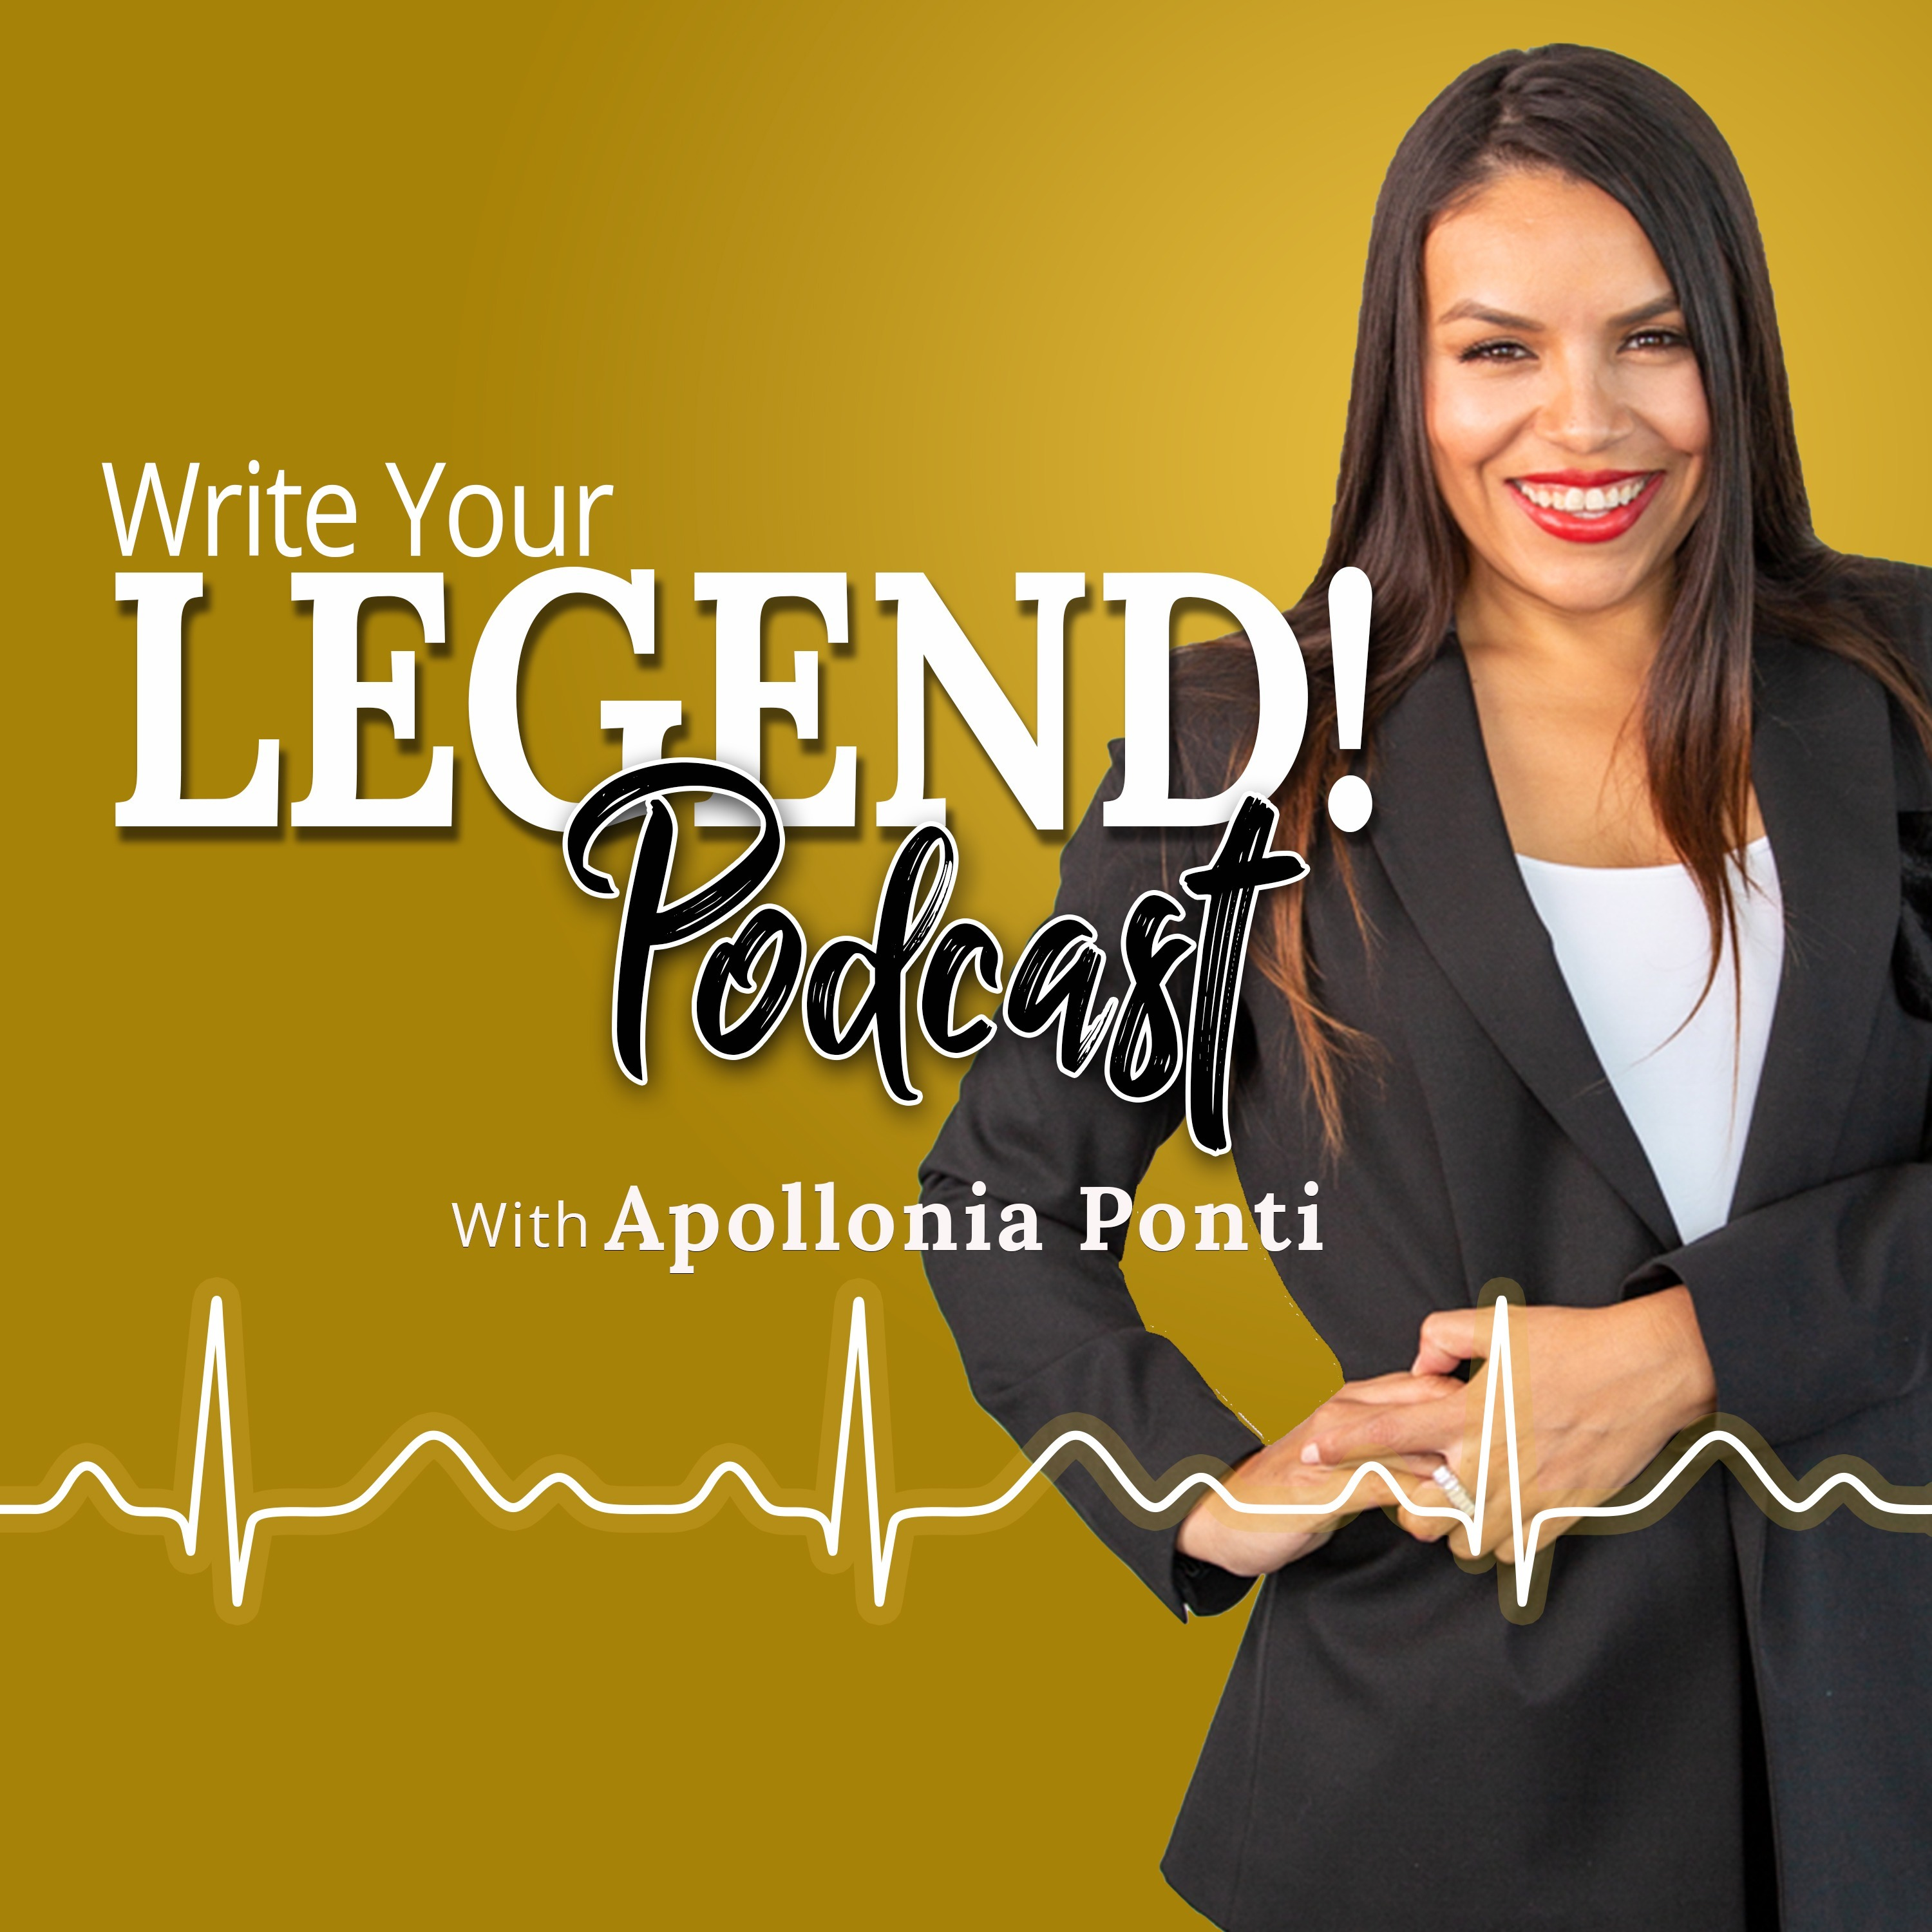 I Am Not Your Toy! Create Healthy Boundaries| Write Your Legend Podcast with Apollonia Ponti and Natalie Stavola show art